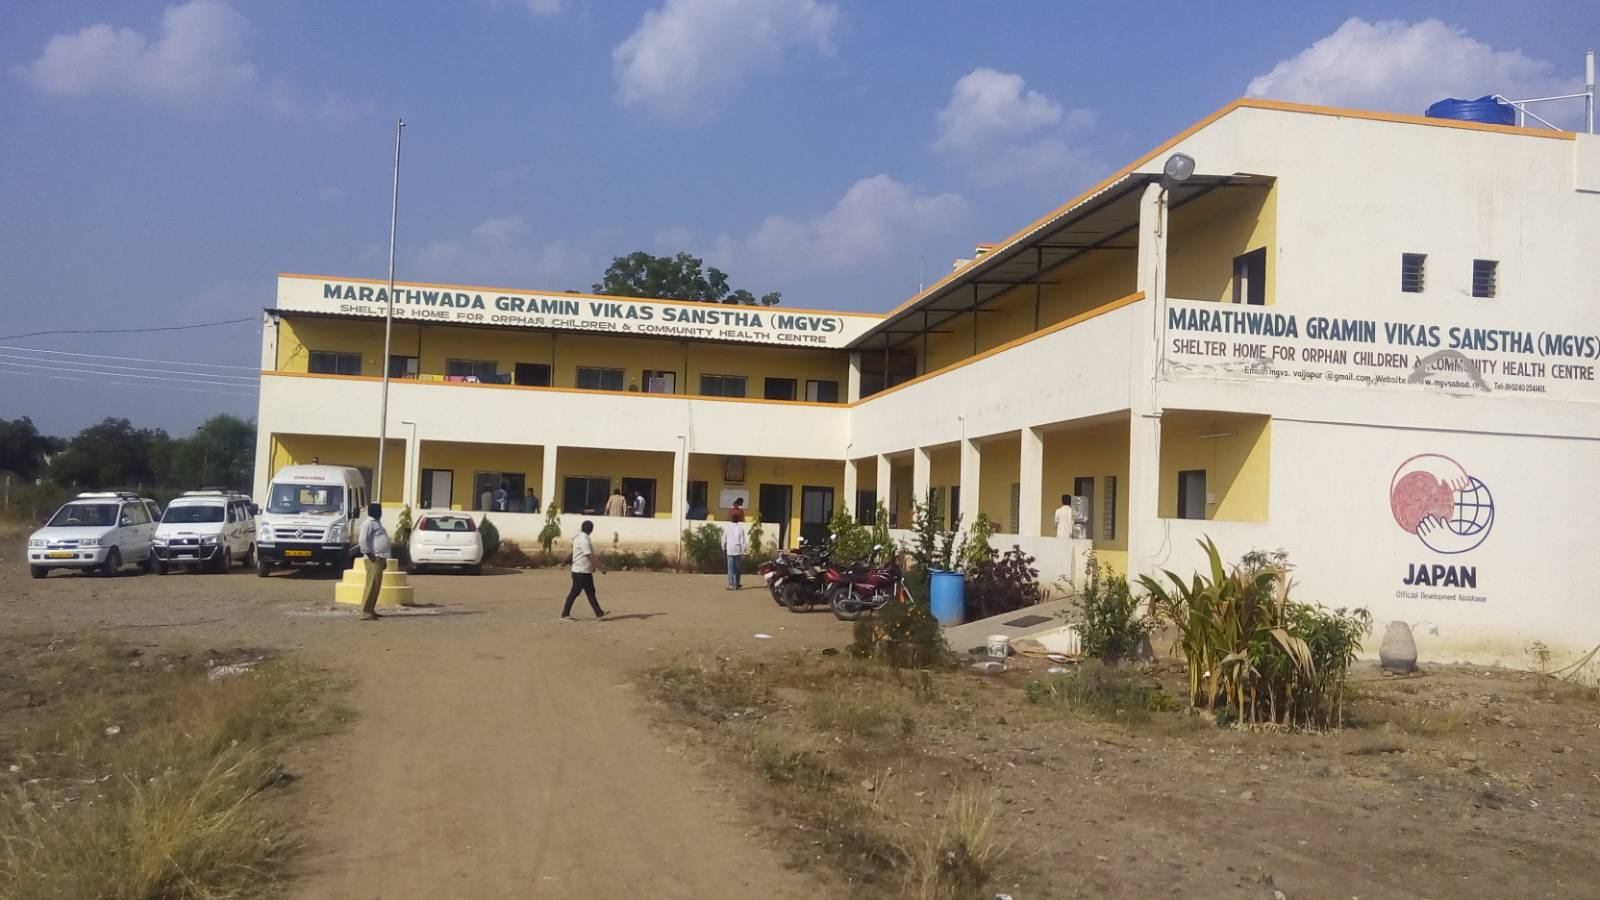 MGVS Shelter home and MGVS office